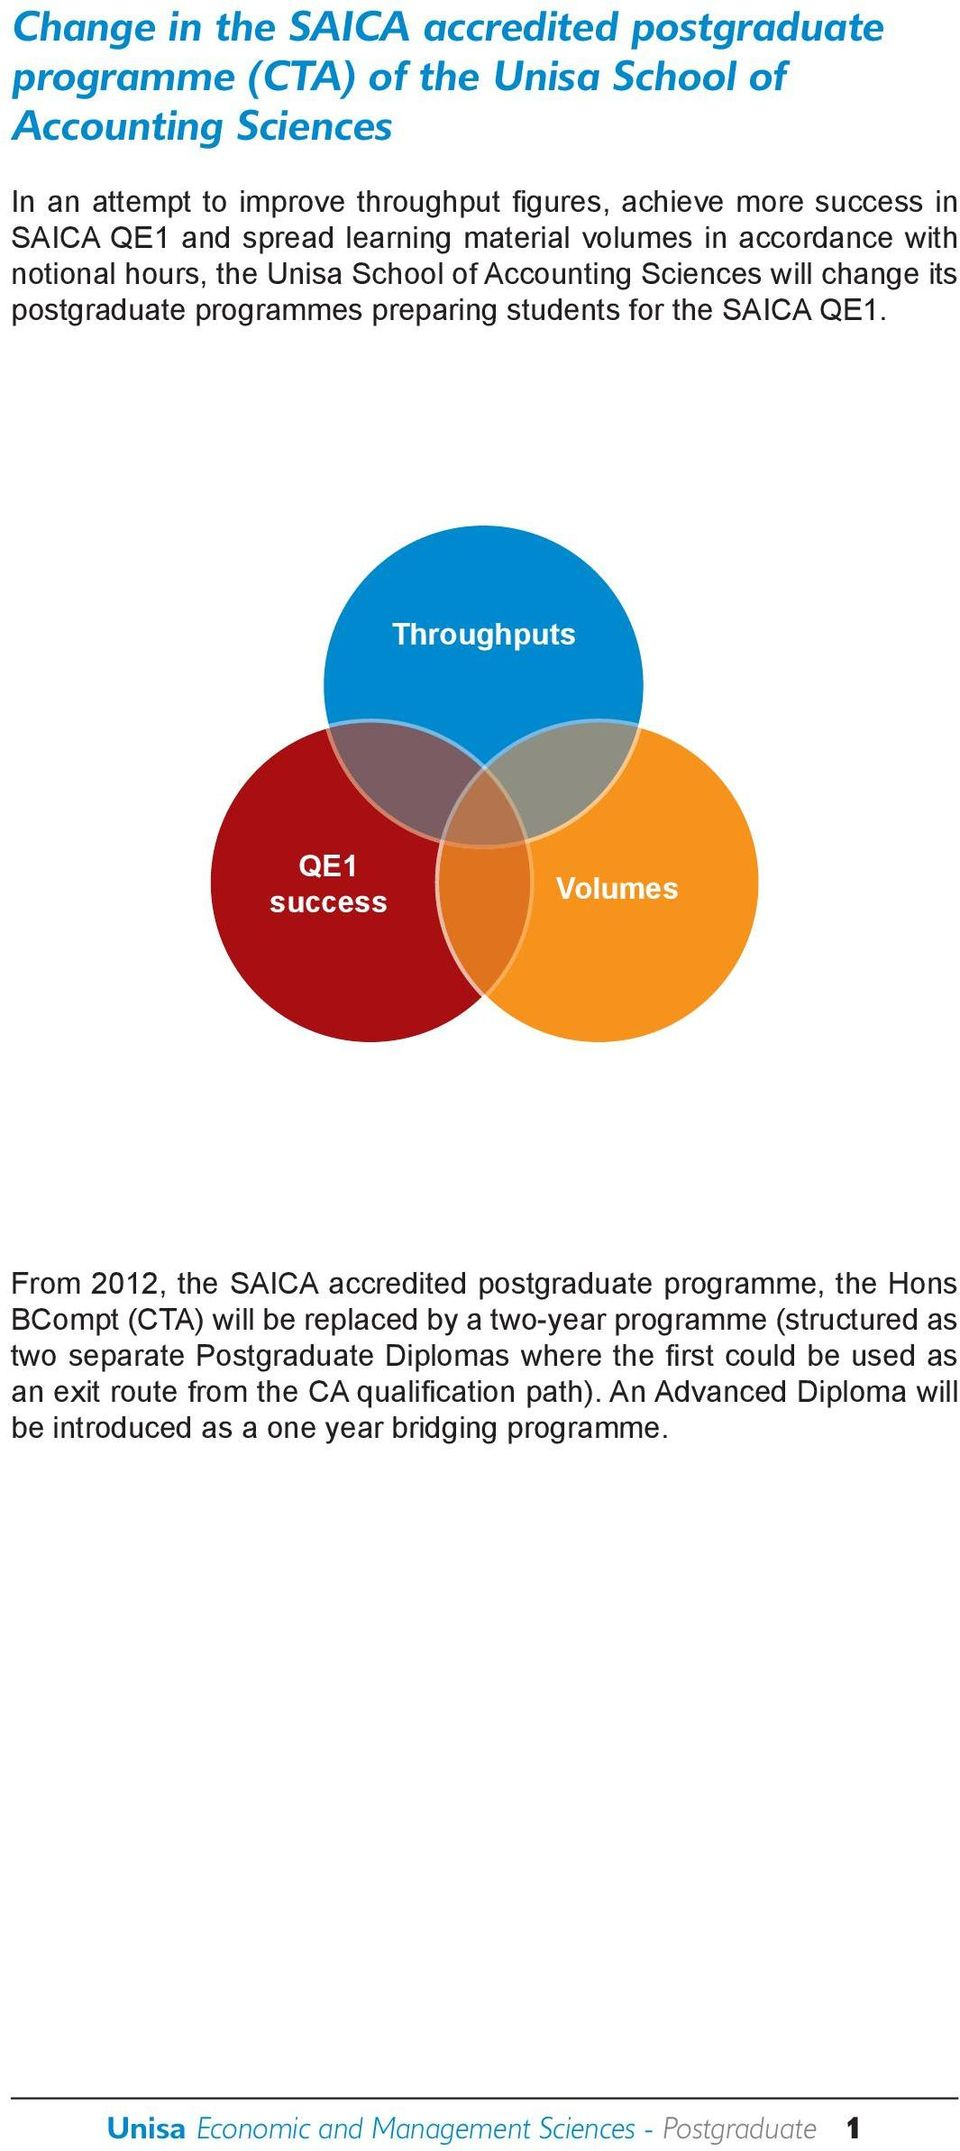 Throughputs QE1 success Volumes From 2012, the SAICA accredited postgraduate programme, the Hons BCompt (CTA) will be replaced by a two-year programme (structured as two separate